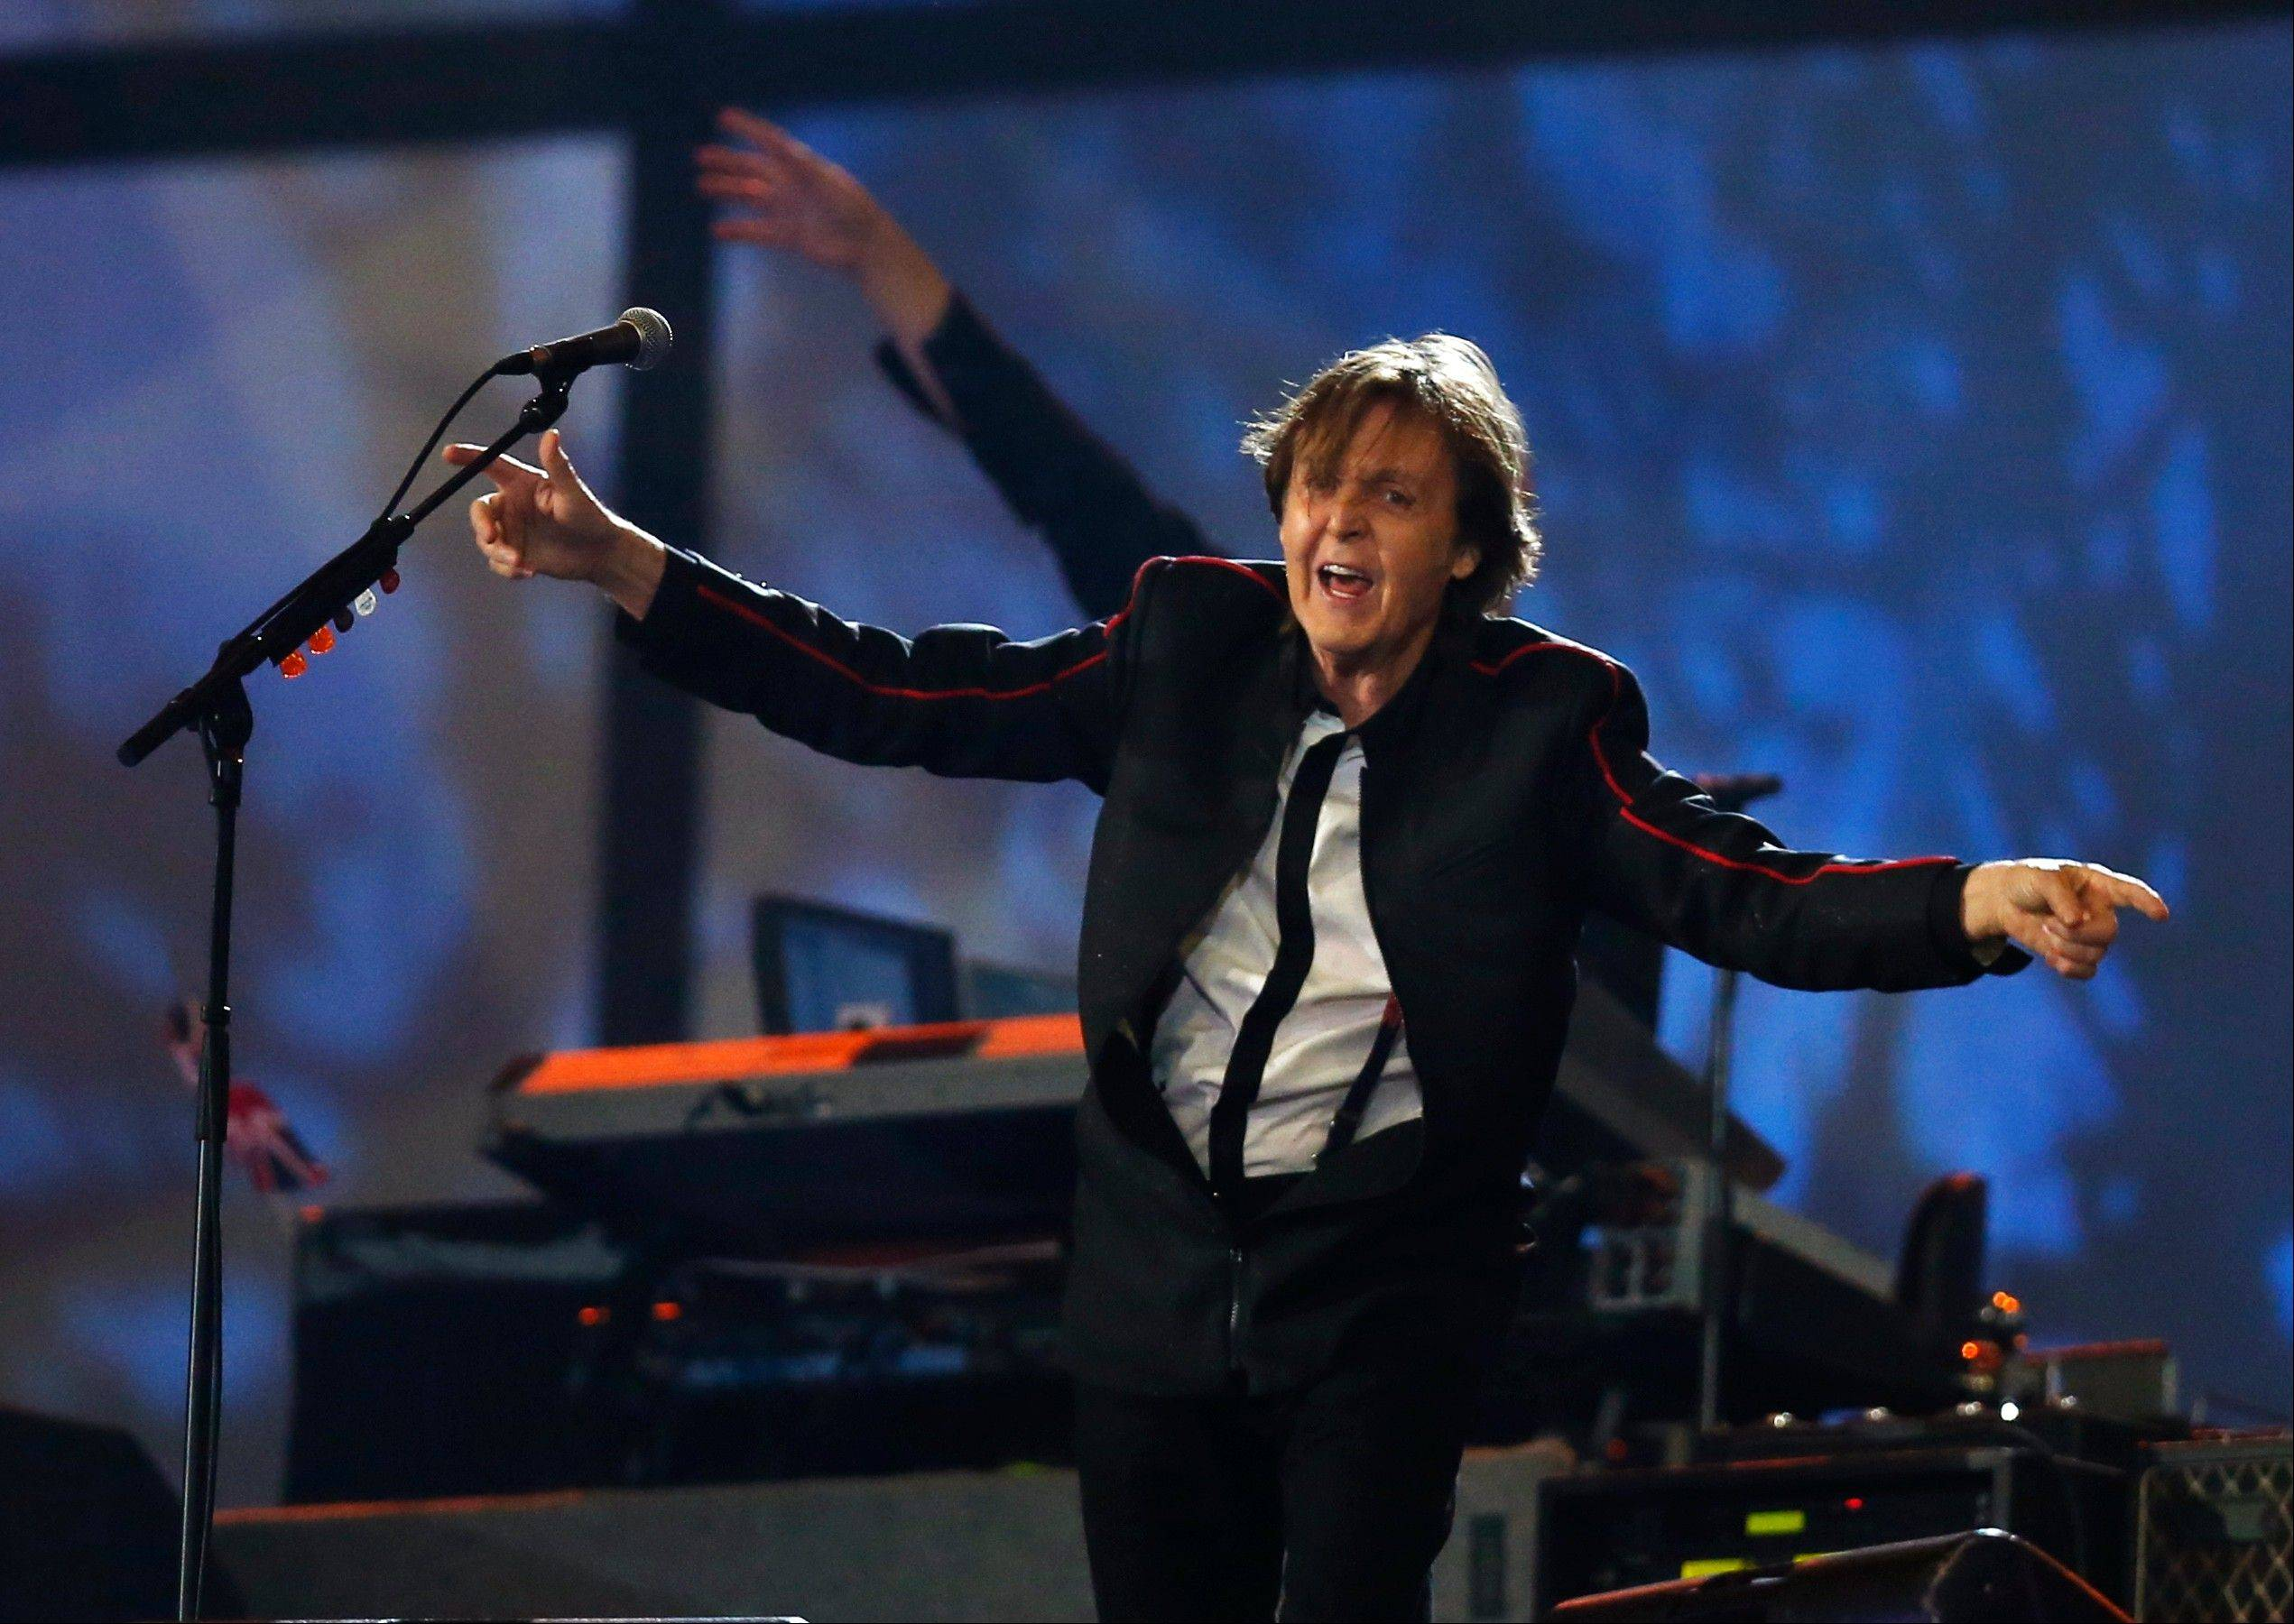 Paul McCartney performs during the Opening Ceremony at the 2012 Summer Olympics on Friday in London.